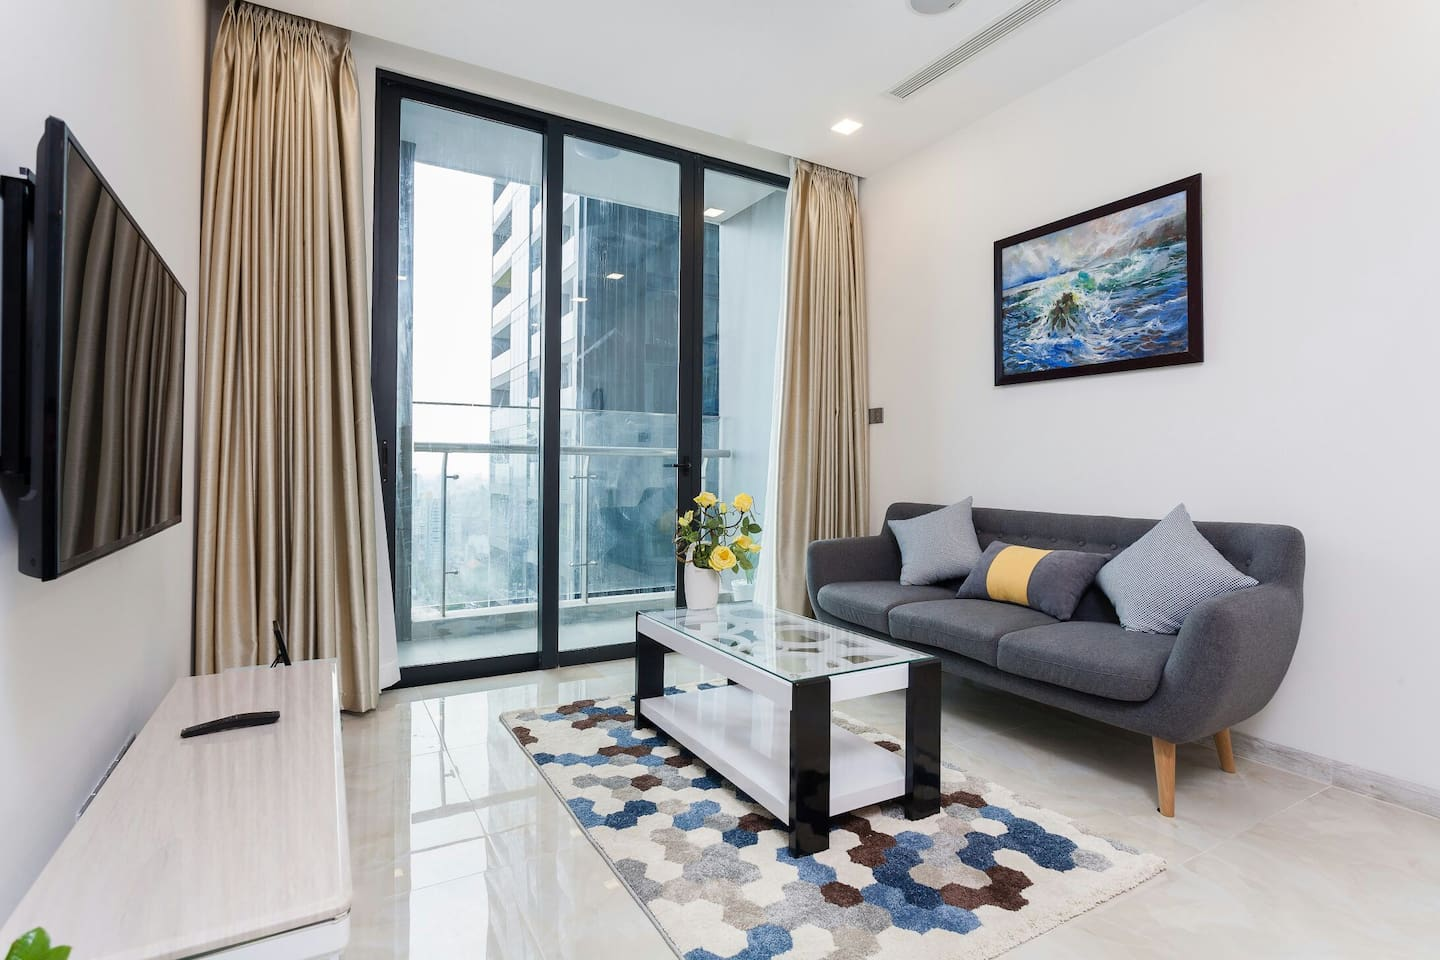 Living room with smath bluetooth, wifi, TV, smartpad, smart air condition from the roof. Beautiful view to SG river, marina, dist. 1 and 2 from the bancon